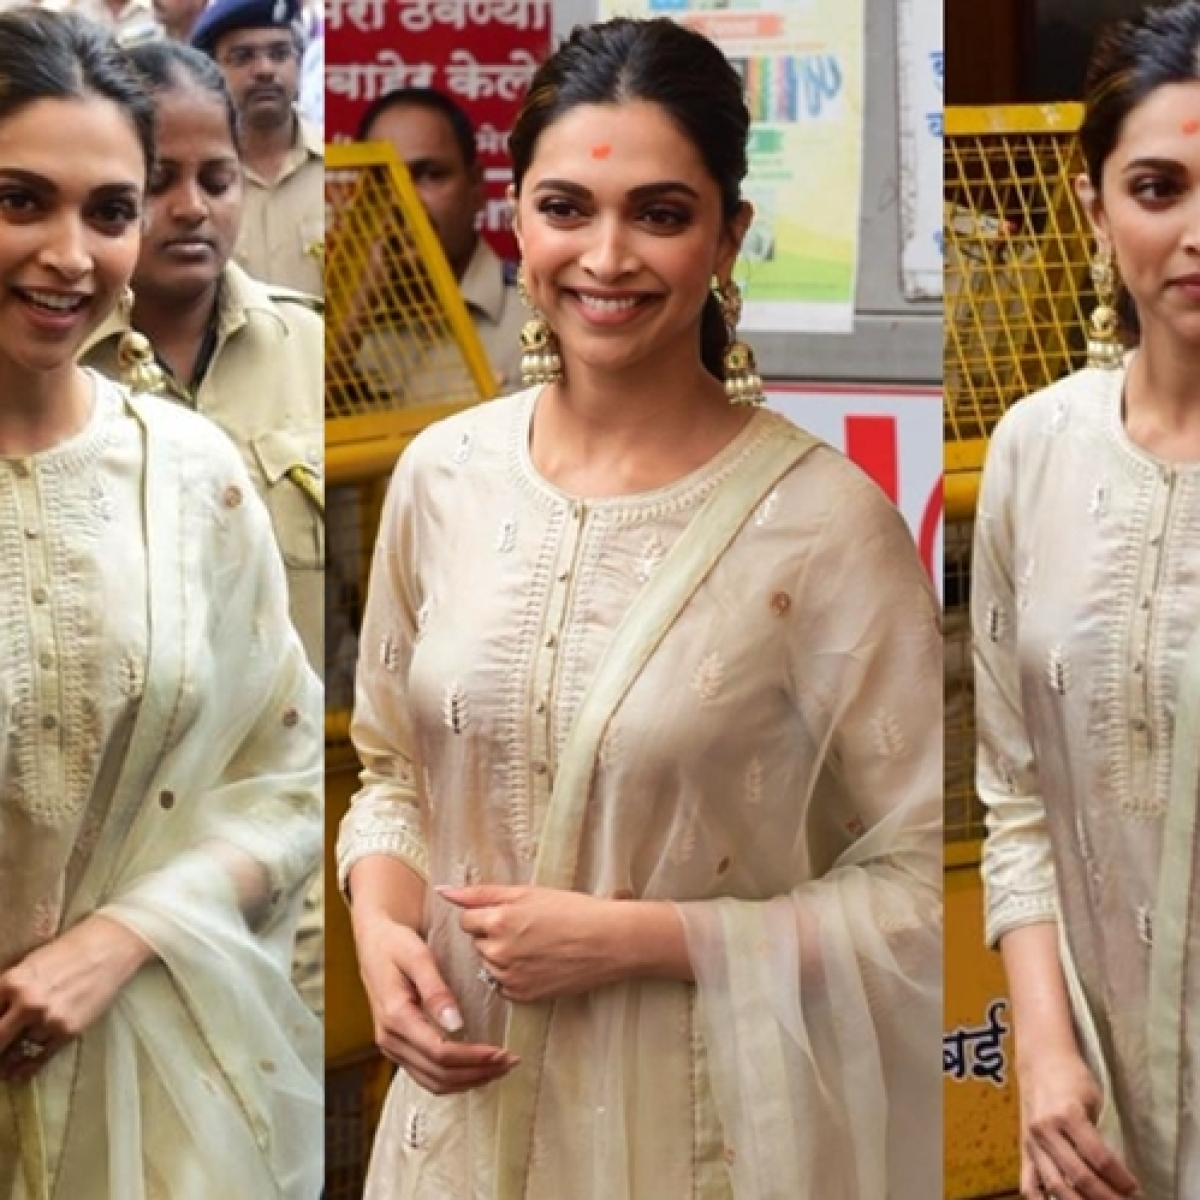 Deepika Padukone visits Siddhivinayak Temple on 'Chhapaak' release day